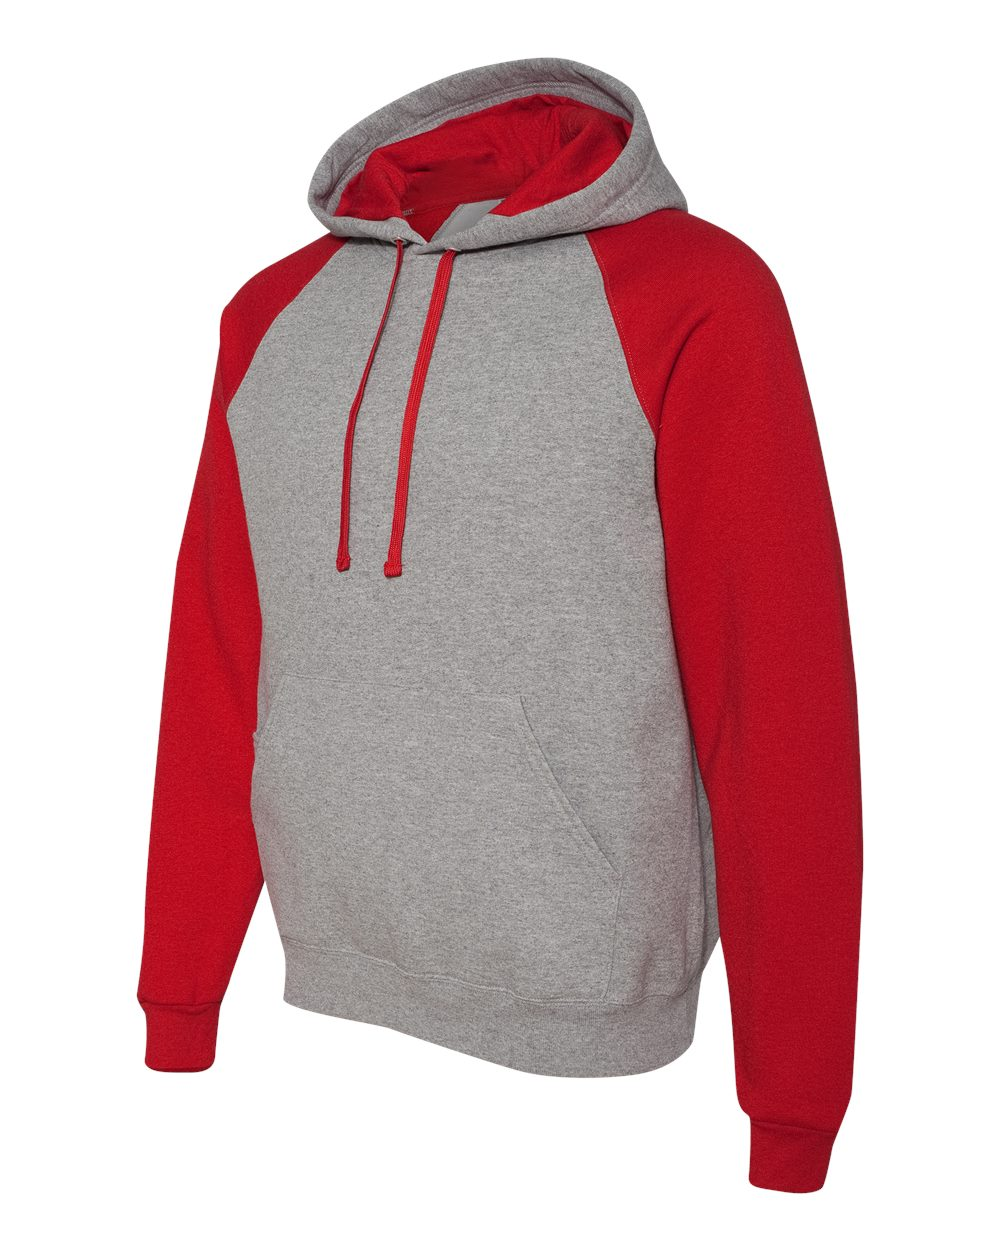 Baseball - Braves Jerzees Color Block Hoodie with Glove logo - Optional Item